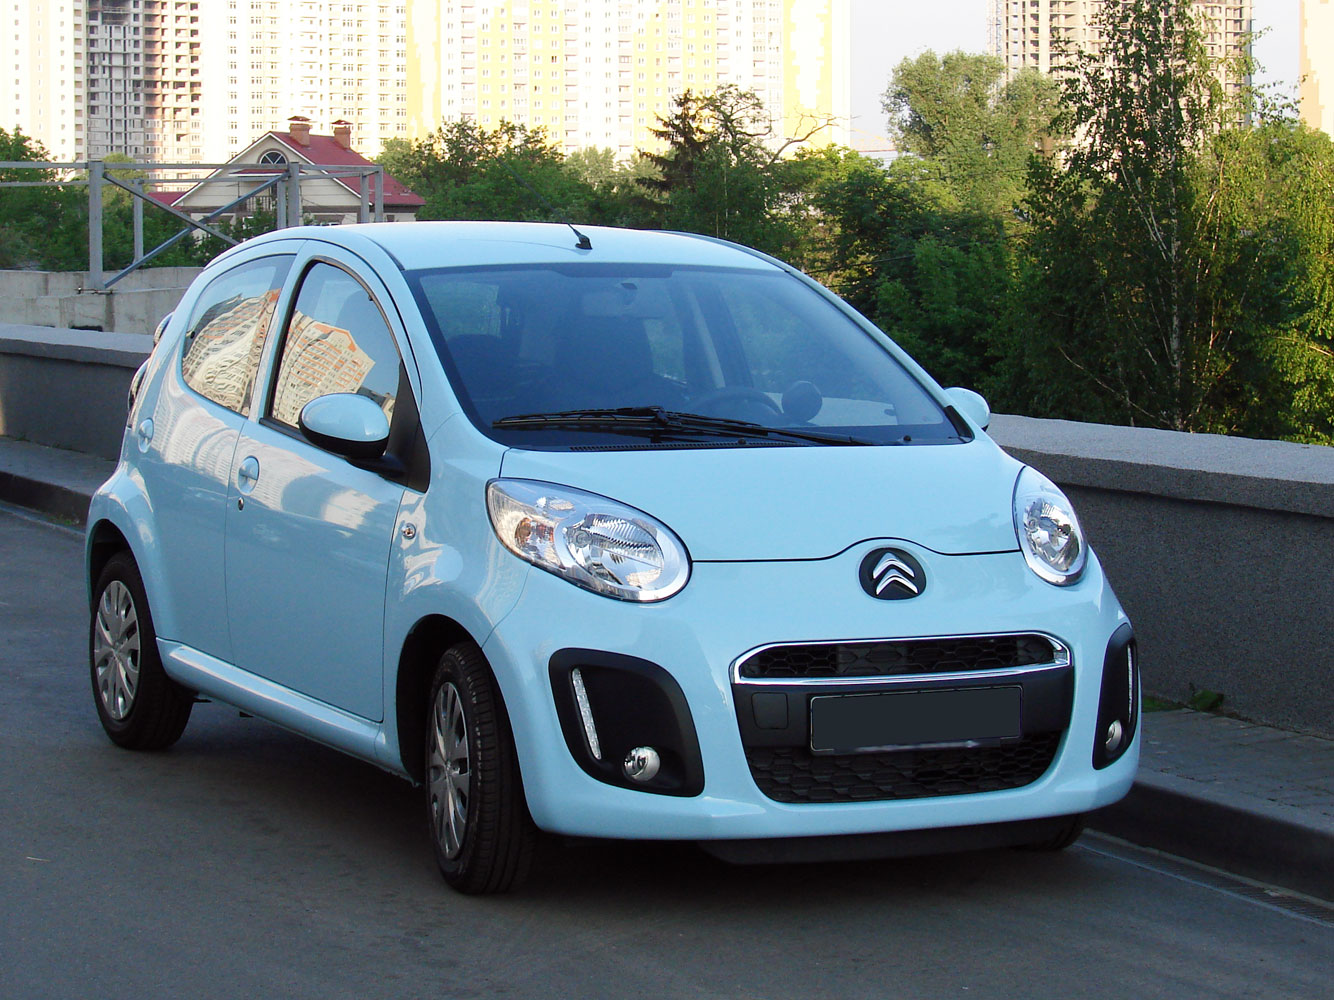 Citroen_C1_2012_facelift